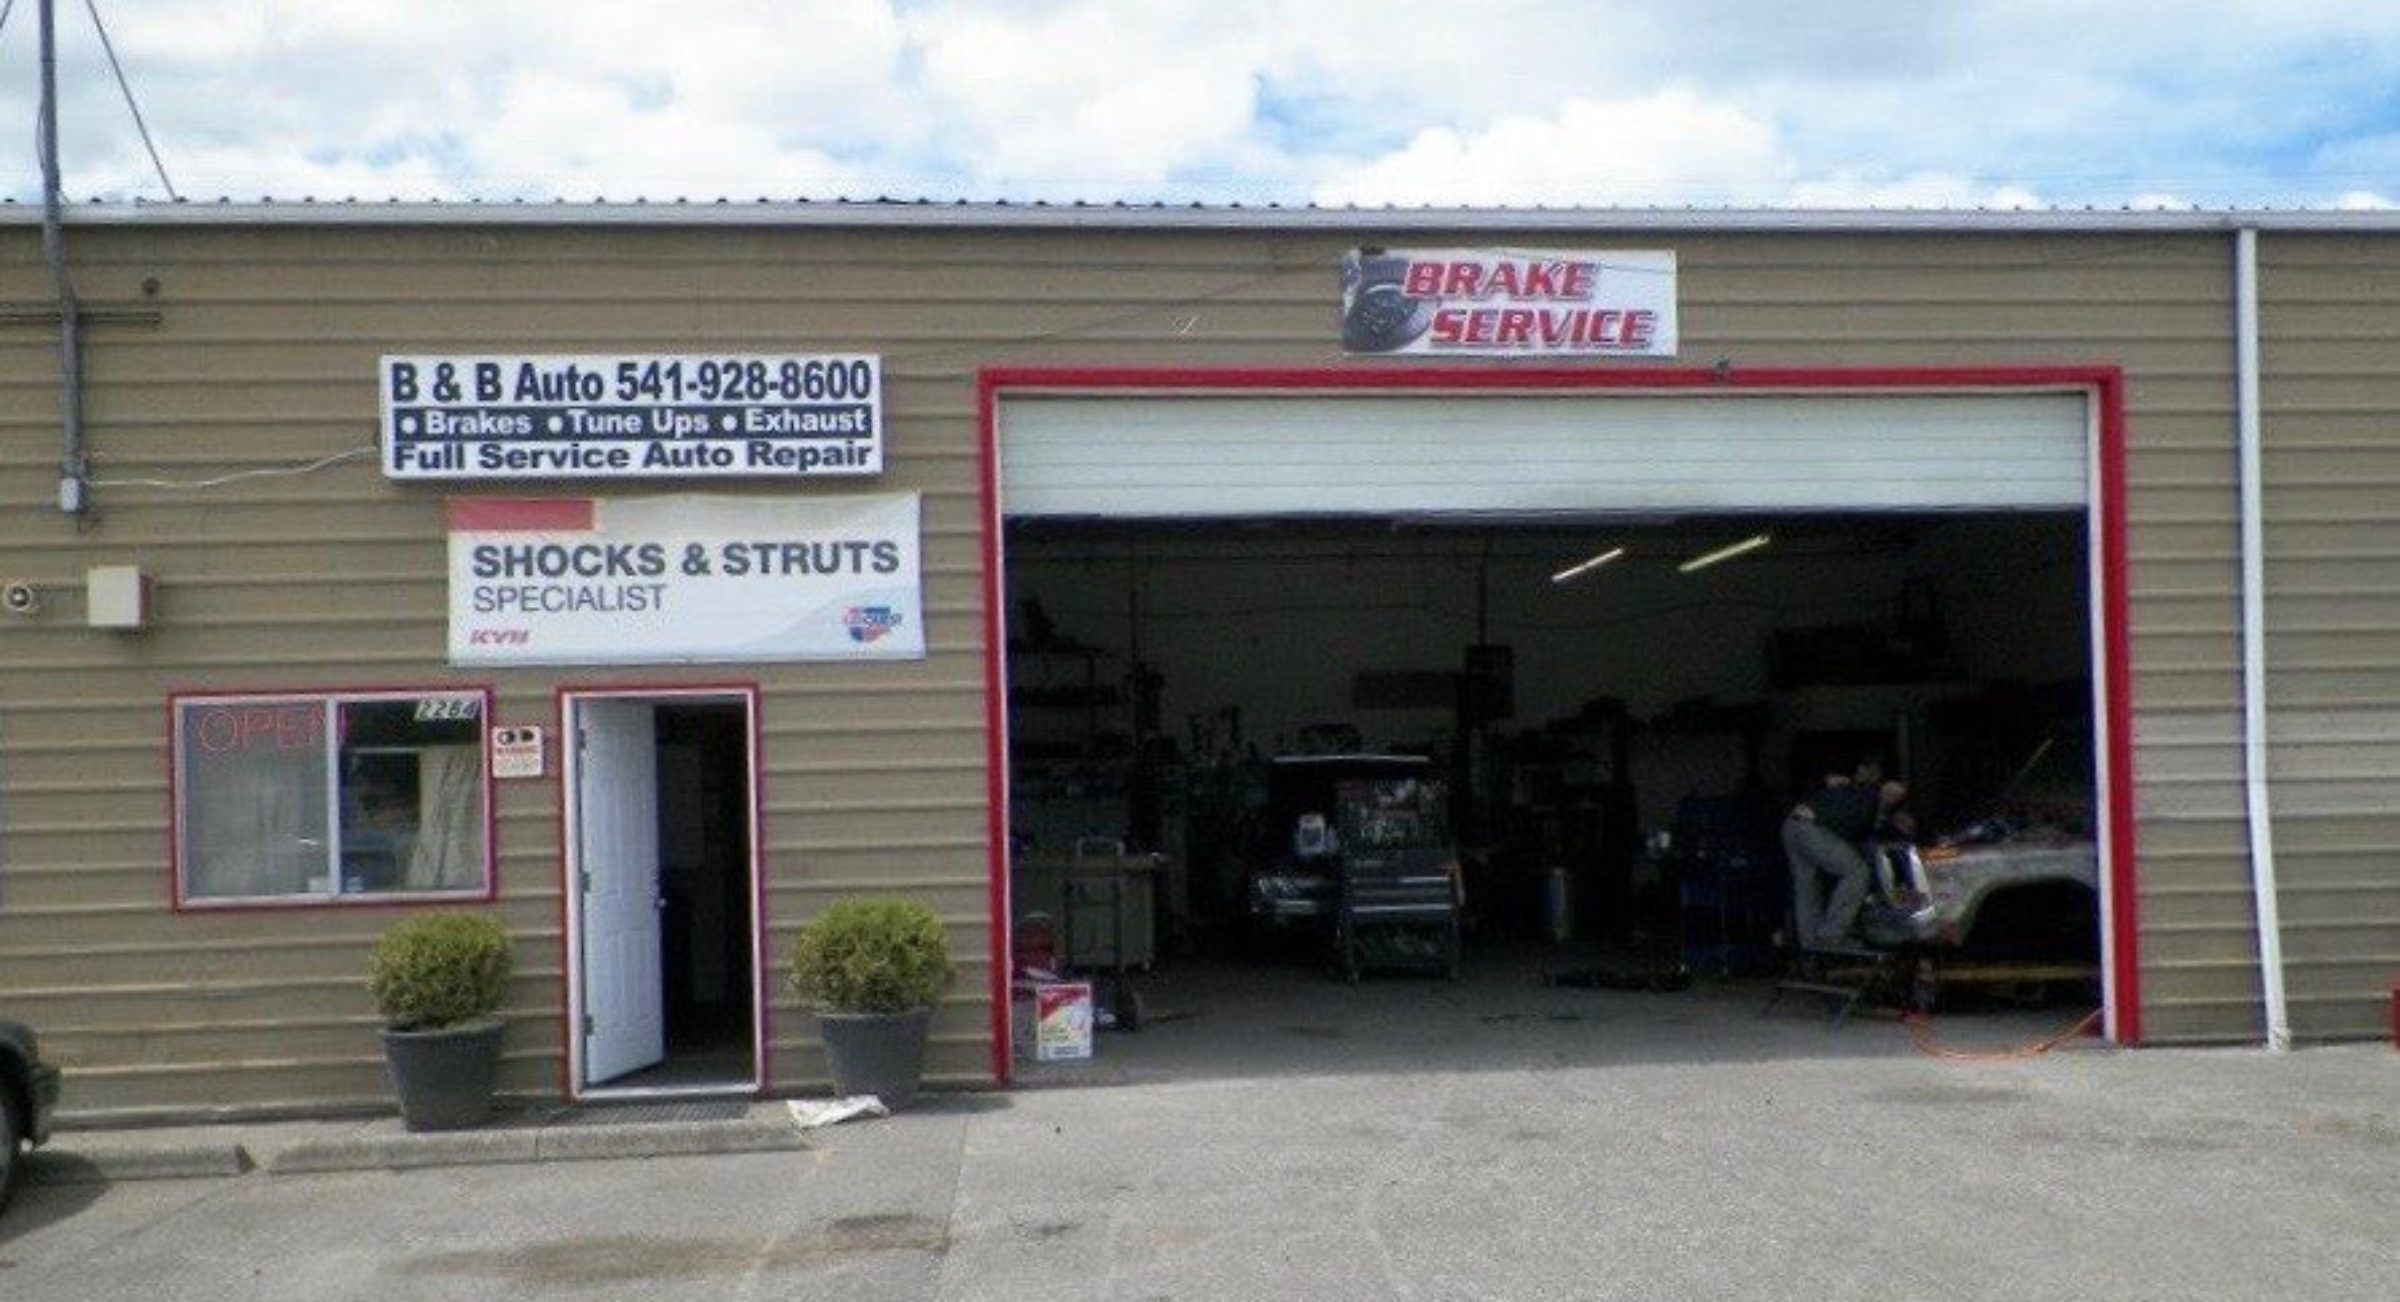 B & B Auto and Fab Shop Outside Front in Albany, Oregon